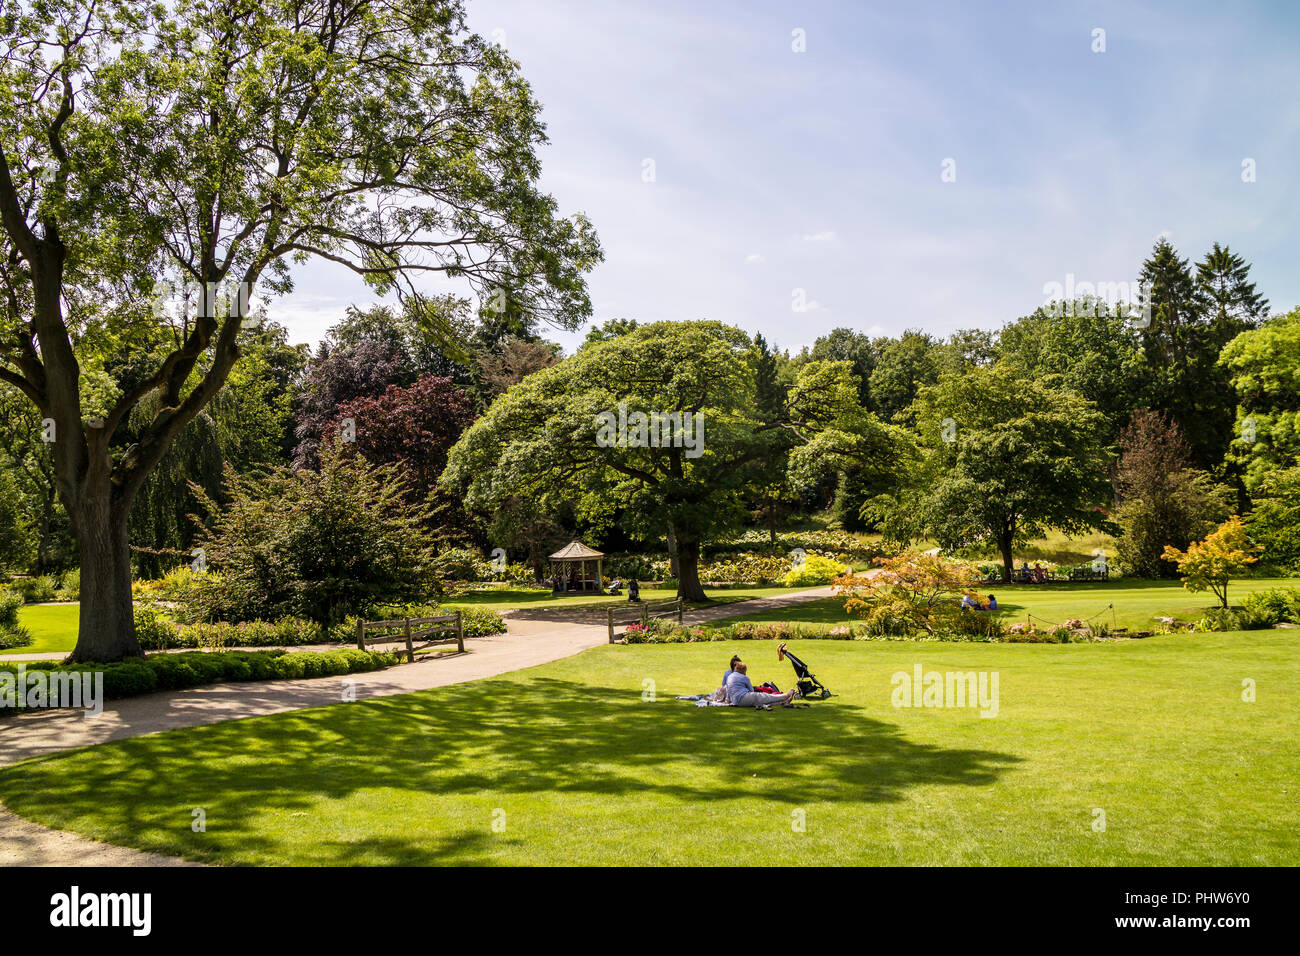 Large English style park with well kept green lawn suitable for picnics. - Stock Image